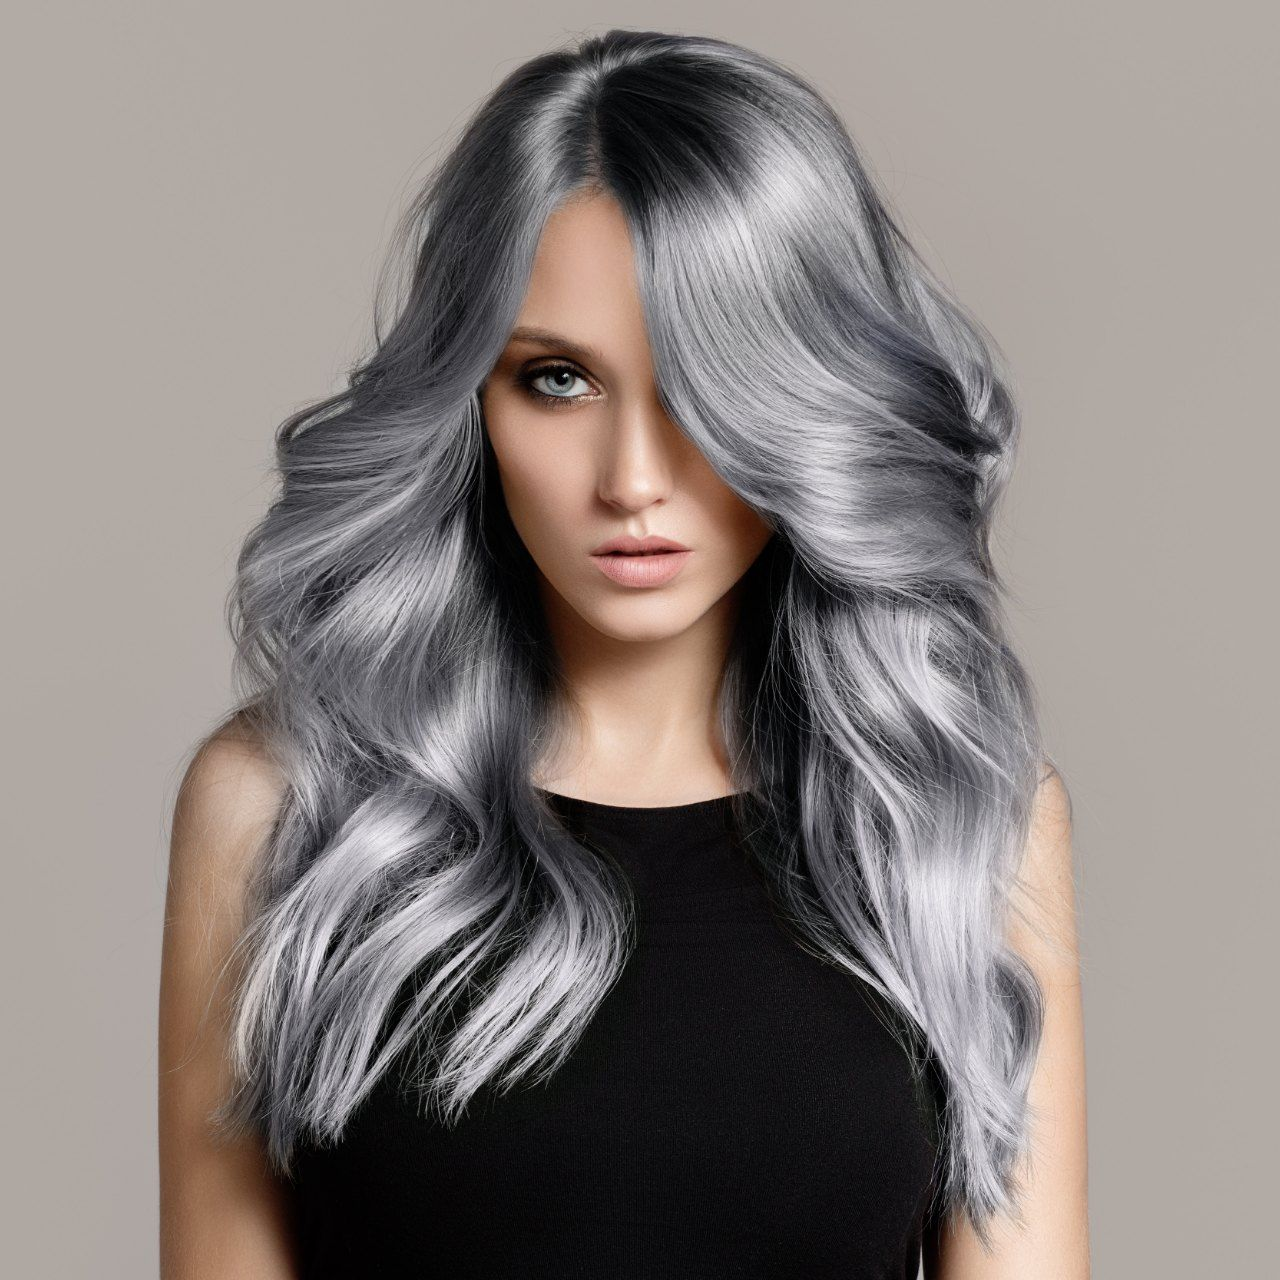 Silver hair image